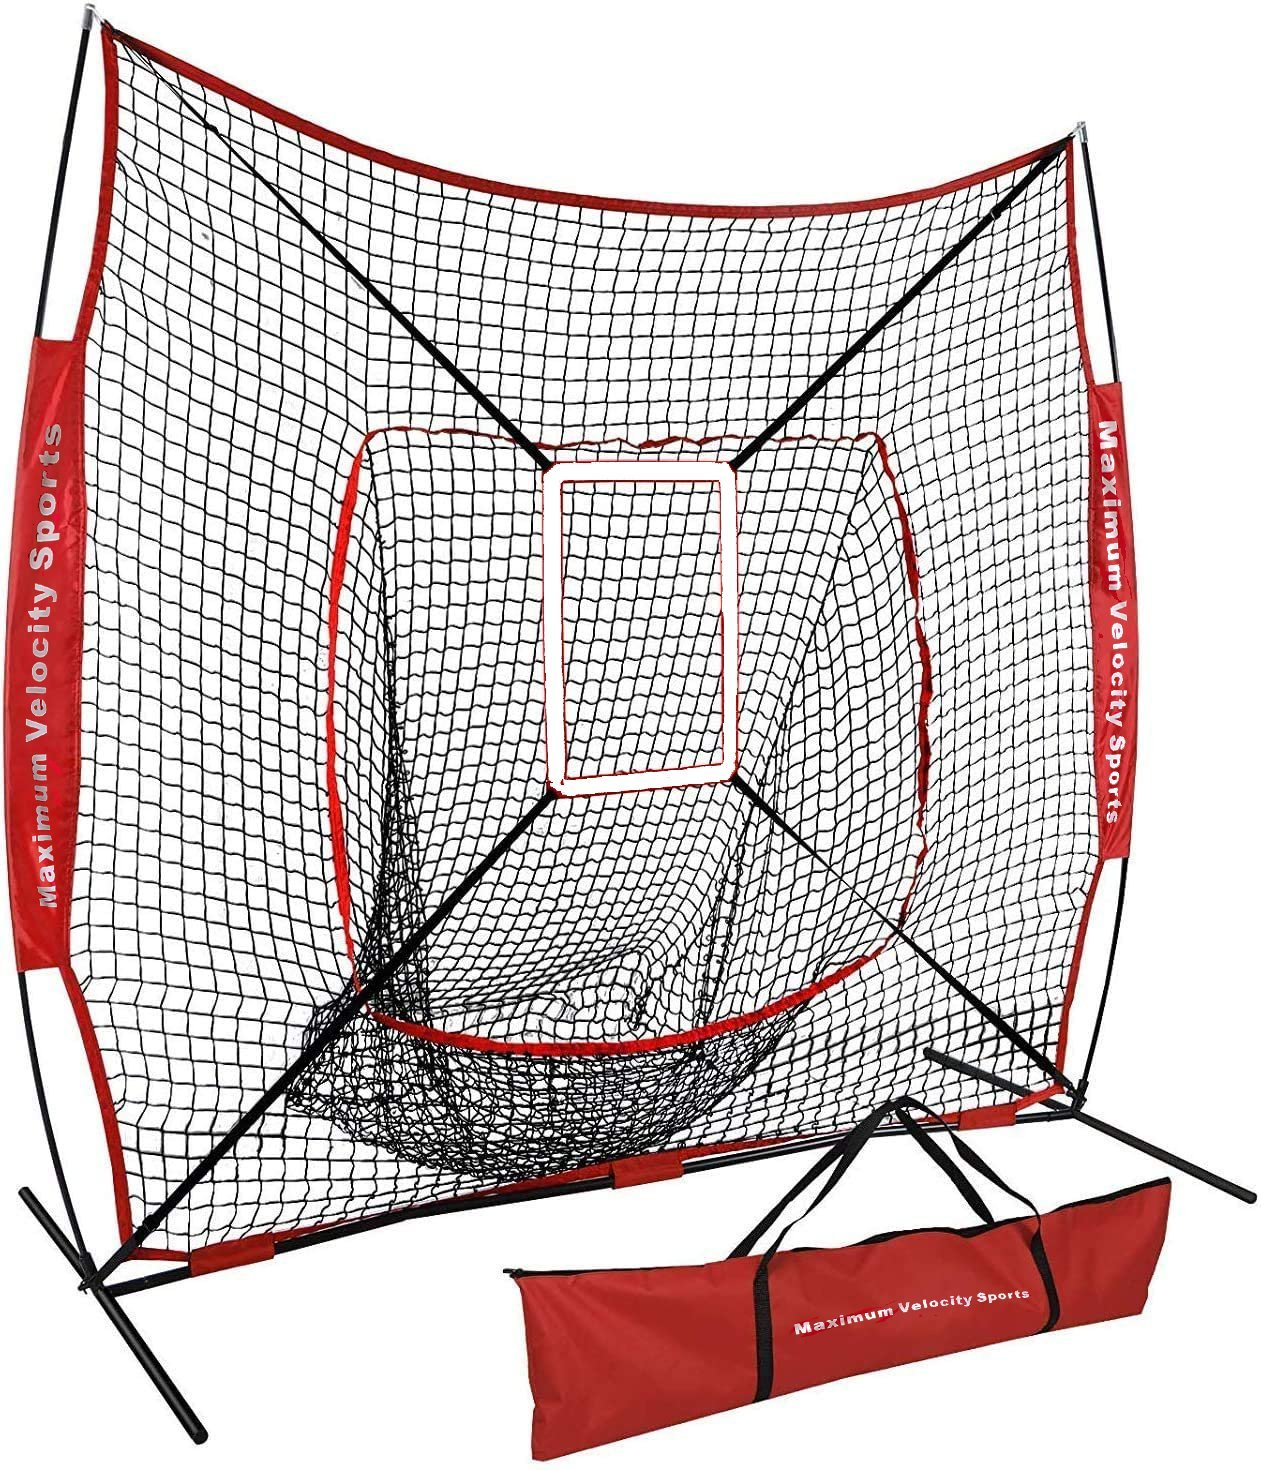 Maximum Velocity Sports | 5x5 Practice Net | Baseball/Softball Net | Ideal Youth Size - Maximum Velocity Sports